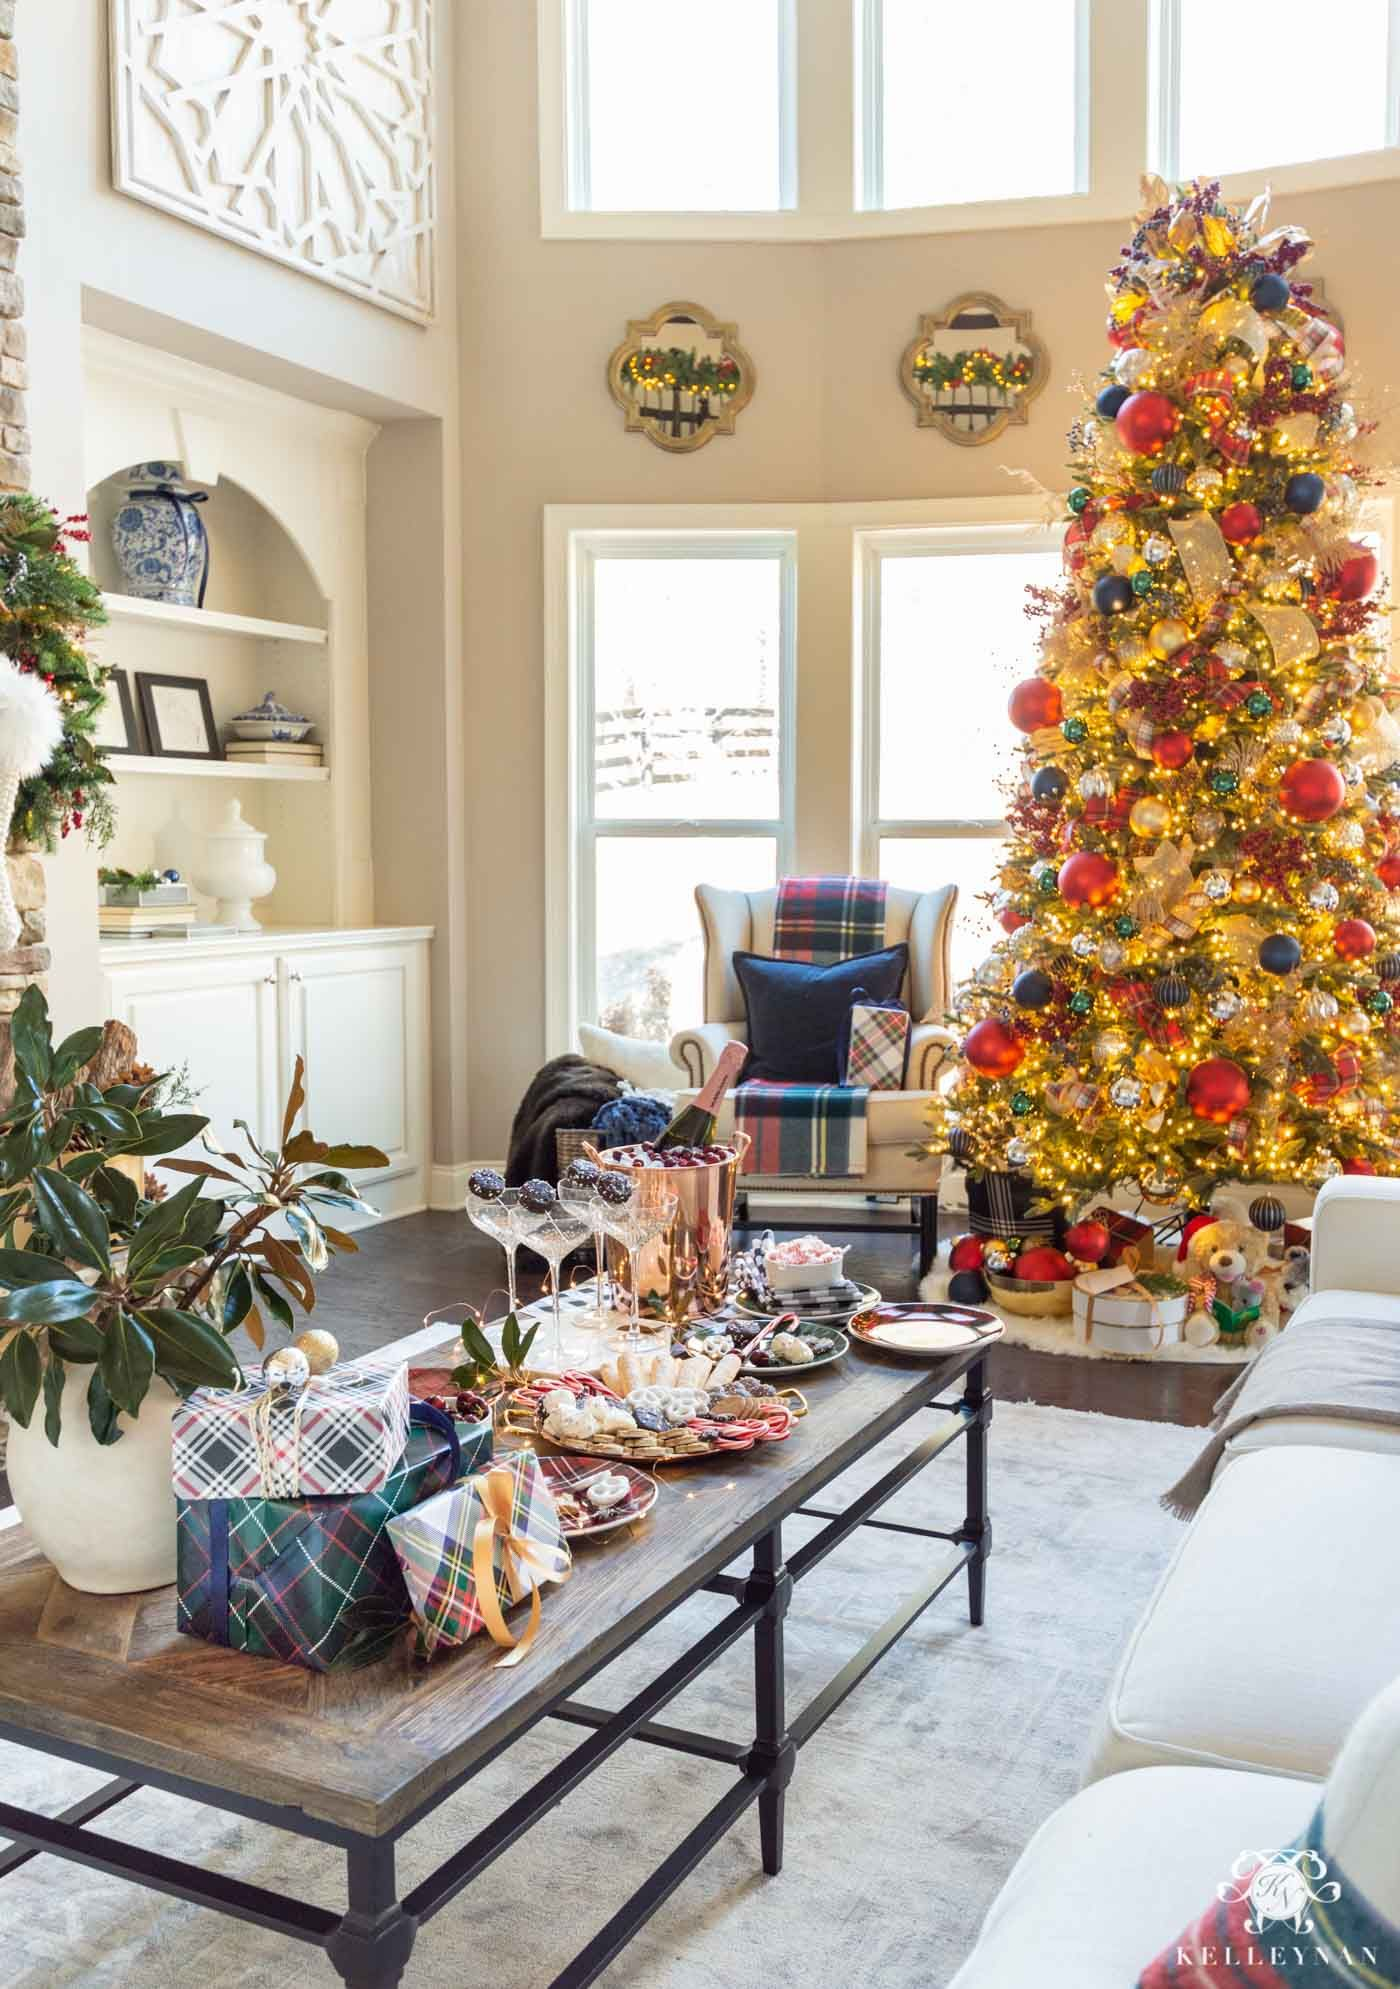 3 Unique New Year S Eve Party Ideas Entertaining Tips Kelley Nan In 2020 Holiday Decor Elegant Holiday Decor Halloween Home Decor